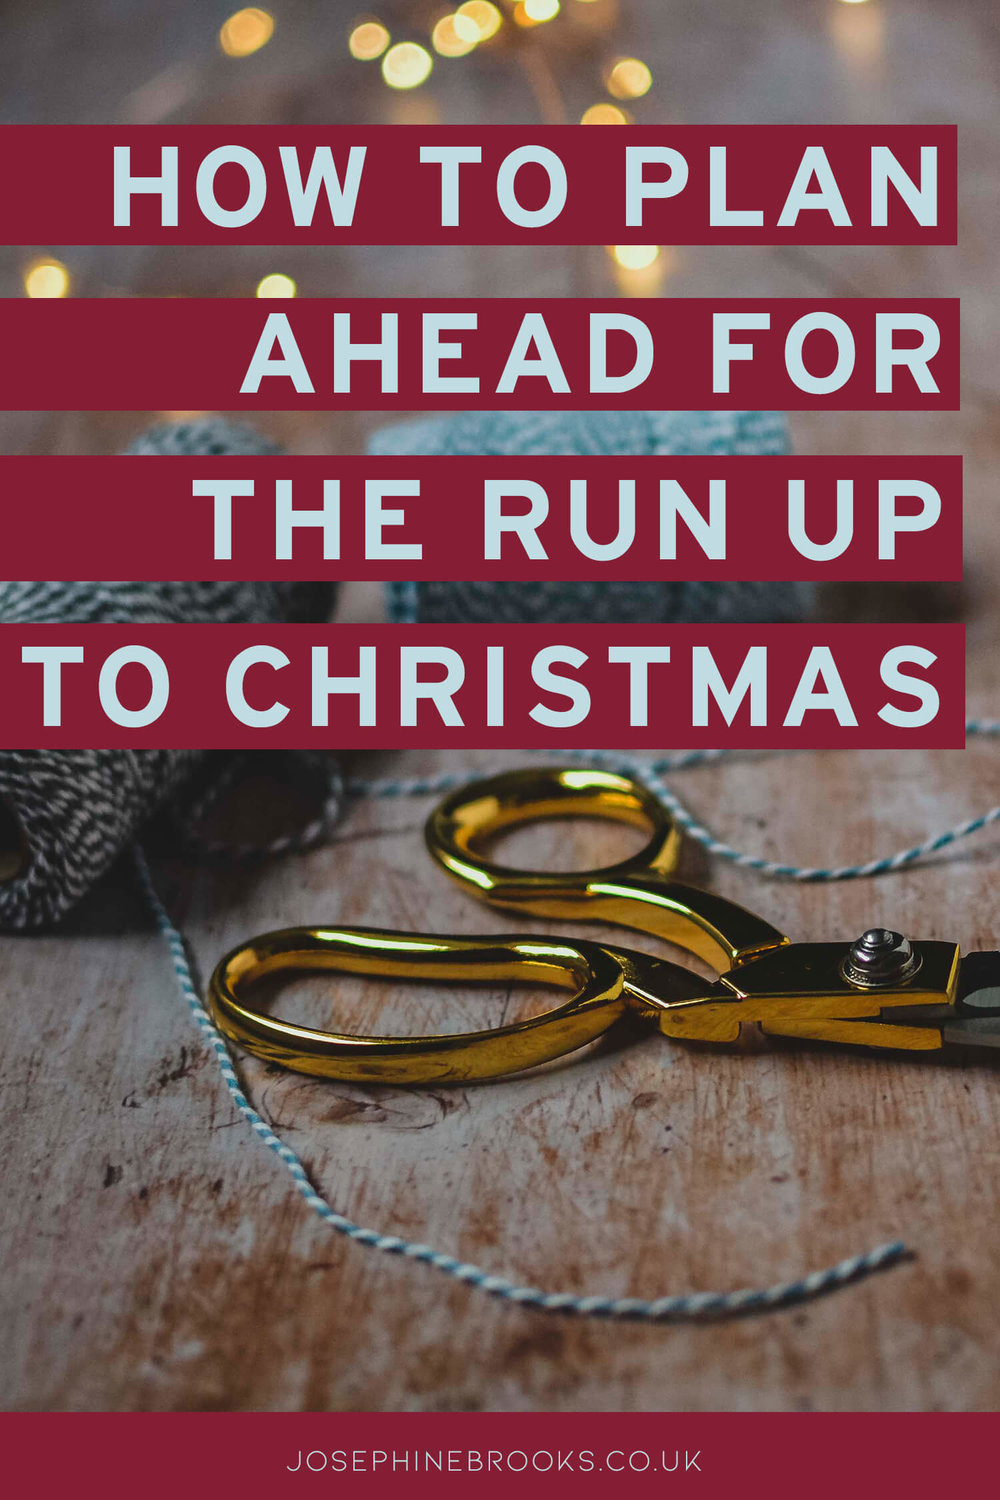 How to plan ahead this summer for the run up to Christmas, Planning for christmas for your creative business, Handmade business planning for Christmas